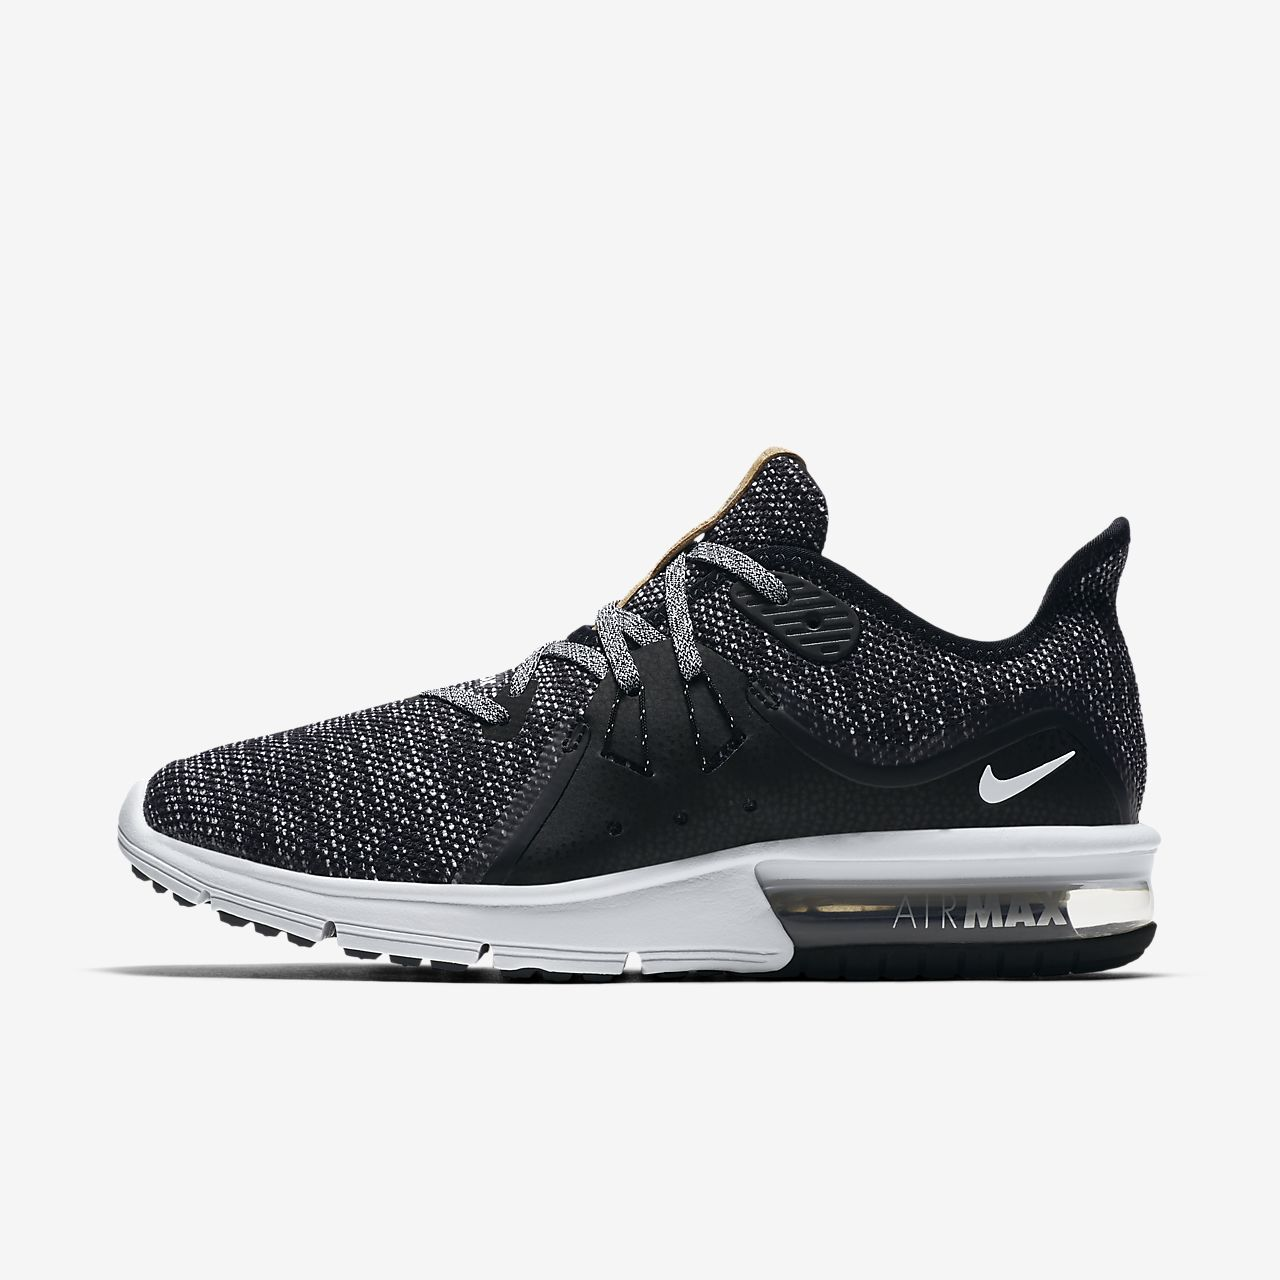 Nike WMNS Air Max Sequent 3 [908993-011] Women Running Shoes Black/White-Grey